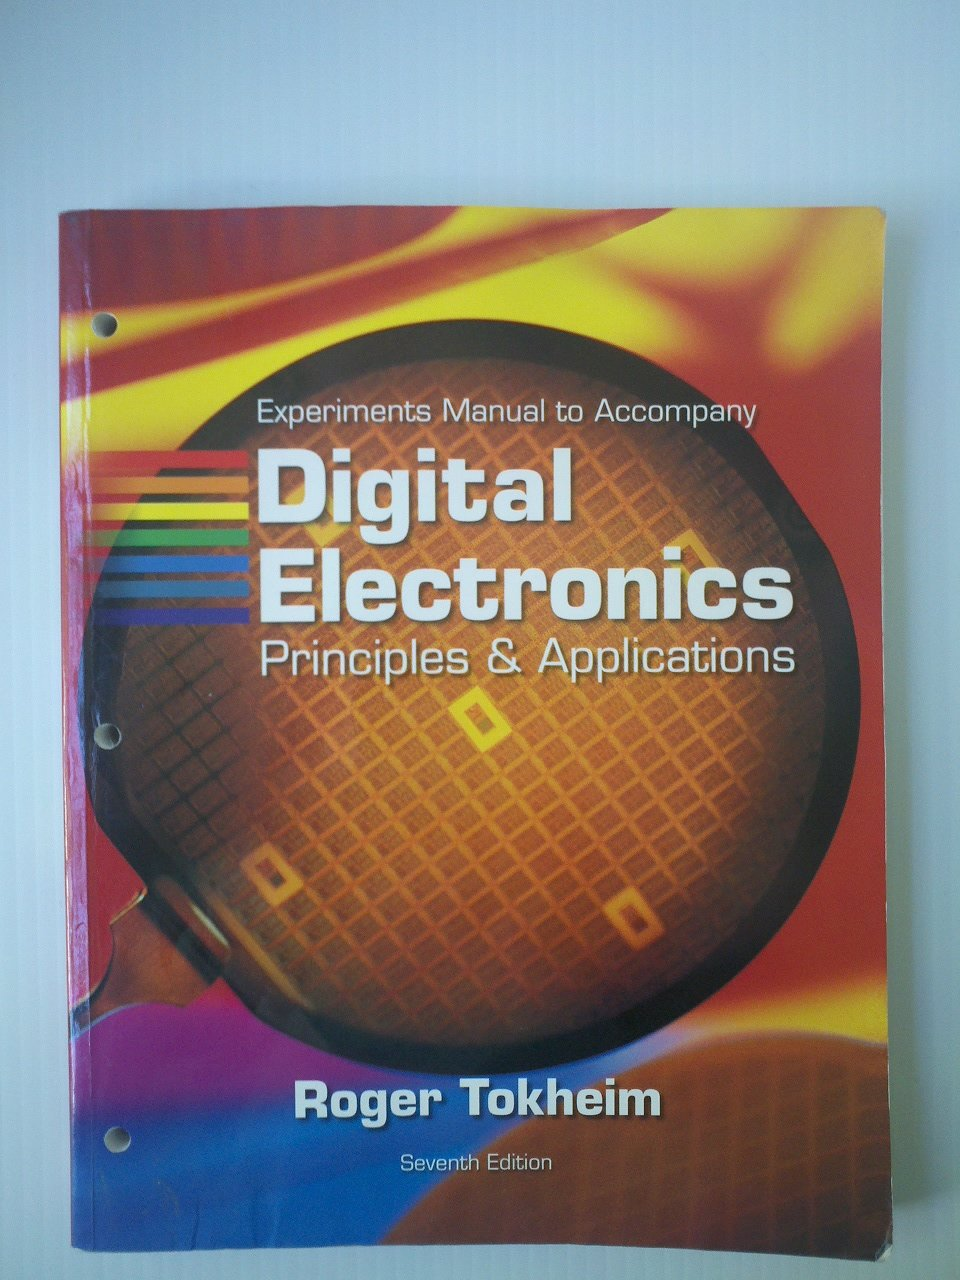 Buy Experiments Manual Digital Electronics: Principles And Applications  Book Online at Low Prices in India | Experiments Manual Digital Electronics:  ...